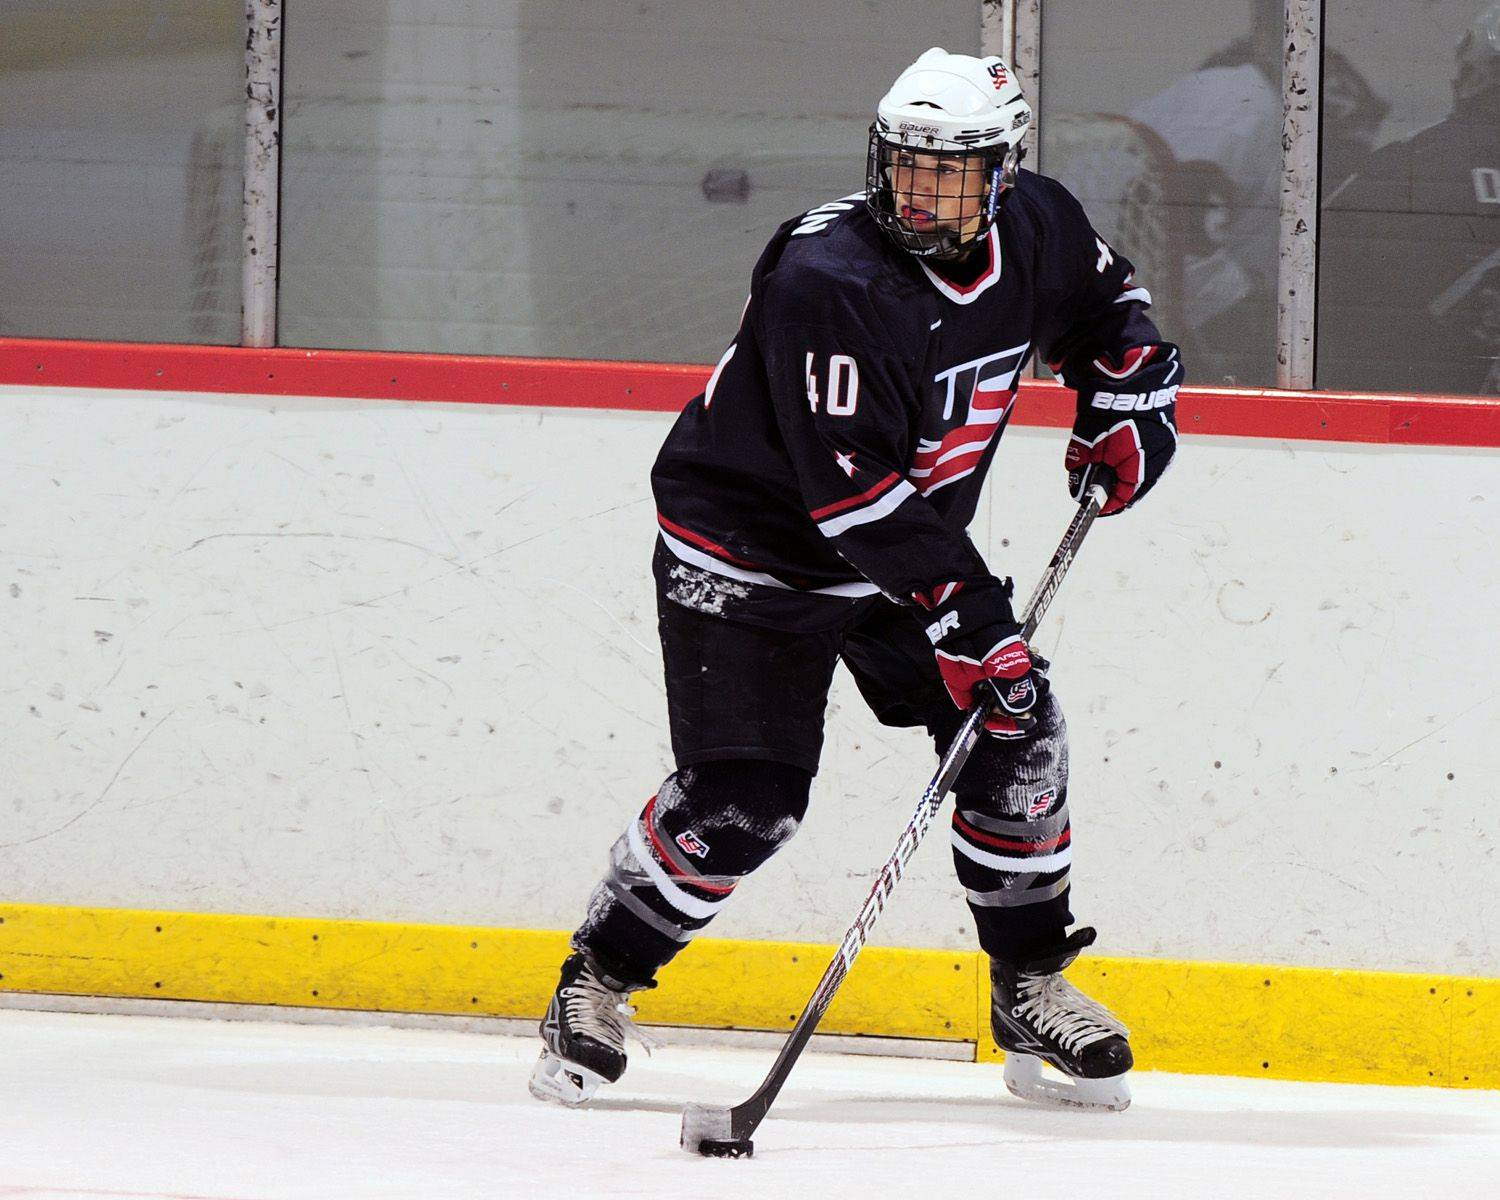 Ryan Hartman of West Dundee is a member of USA Hockey's national team development program. He was the leading scorer for the U-17 team last season and now plays for the U-18 team. Many of the program's players go on to NHL careers.